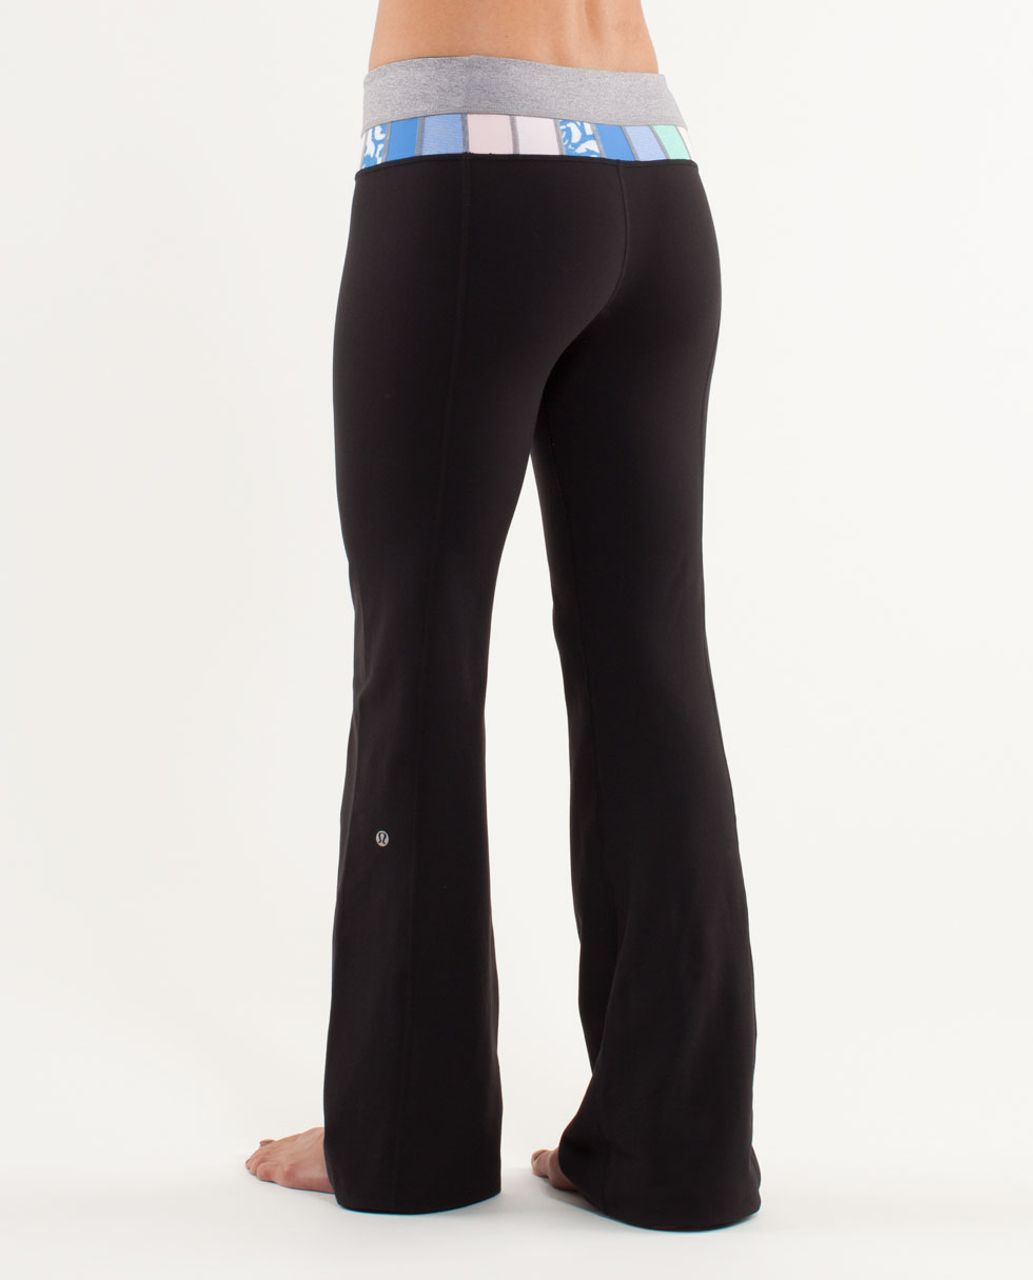 Lululemon Groove Pant (Regular) - Black /  Heathered Fossil /  Quilting Spring 21